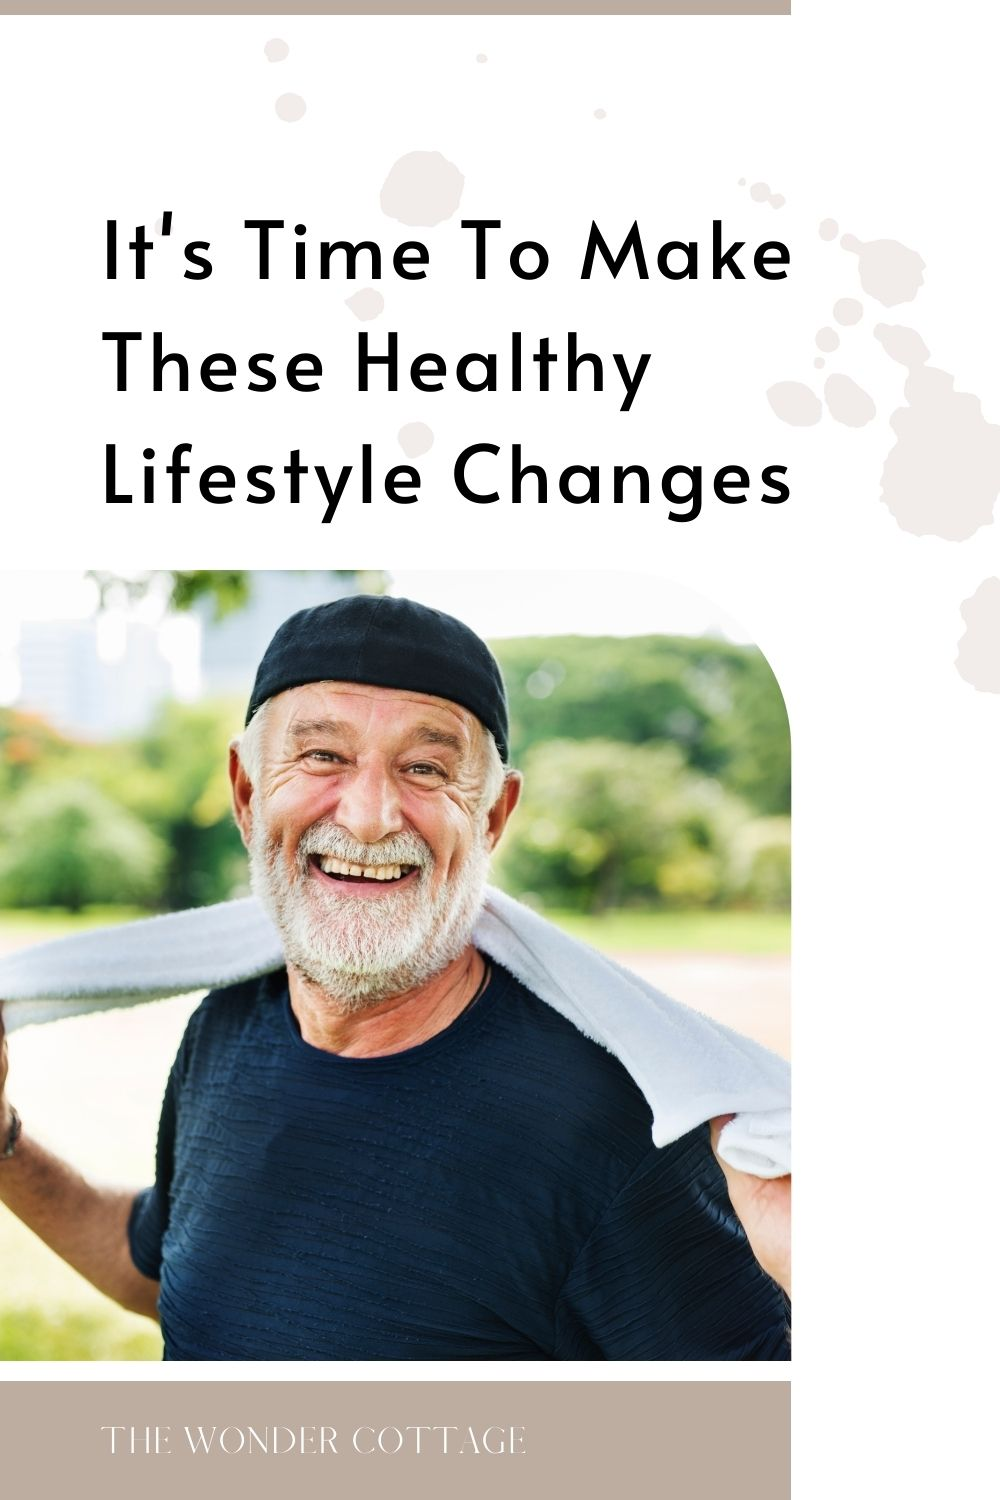 It's time to make these healthy lifestyle changes